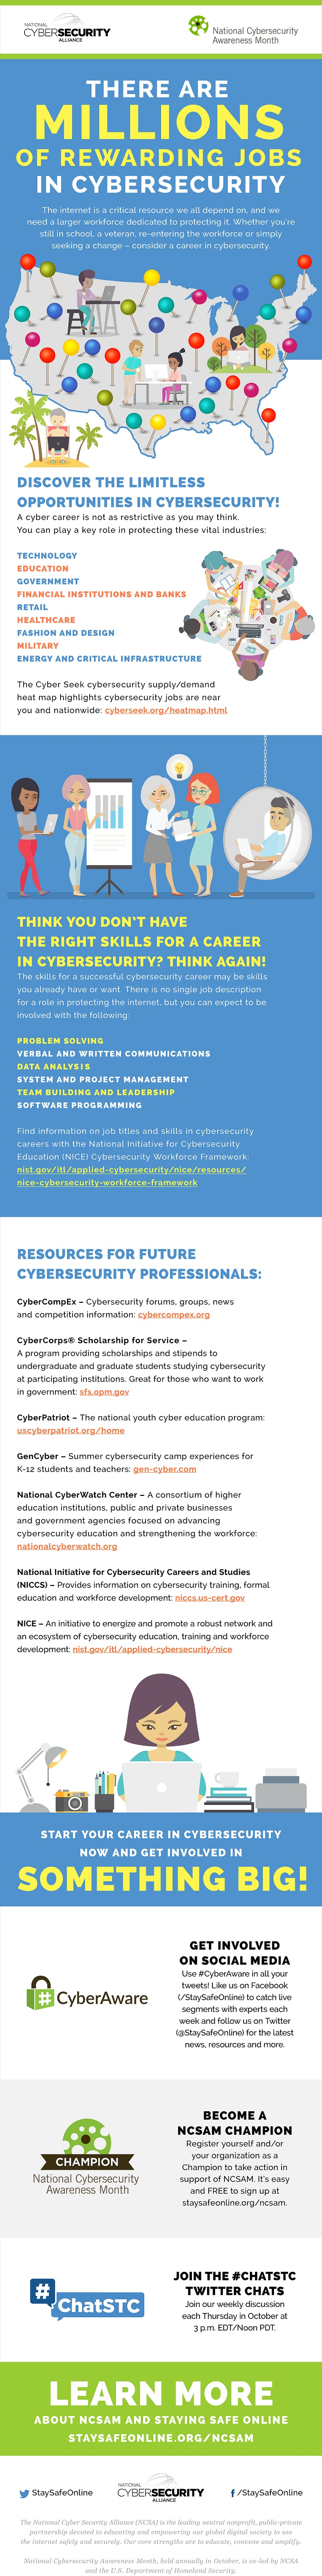 Cybersecurity careers infographic